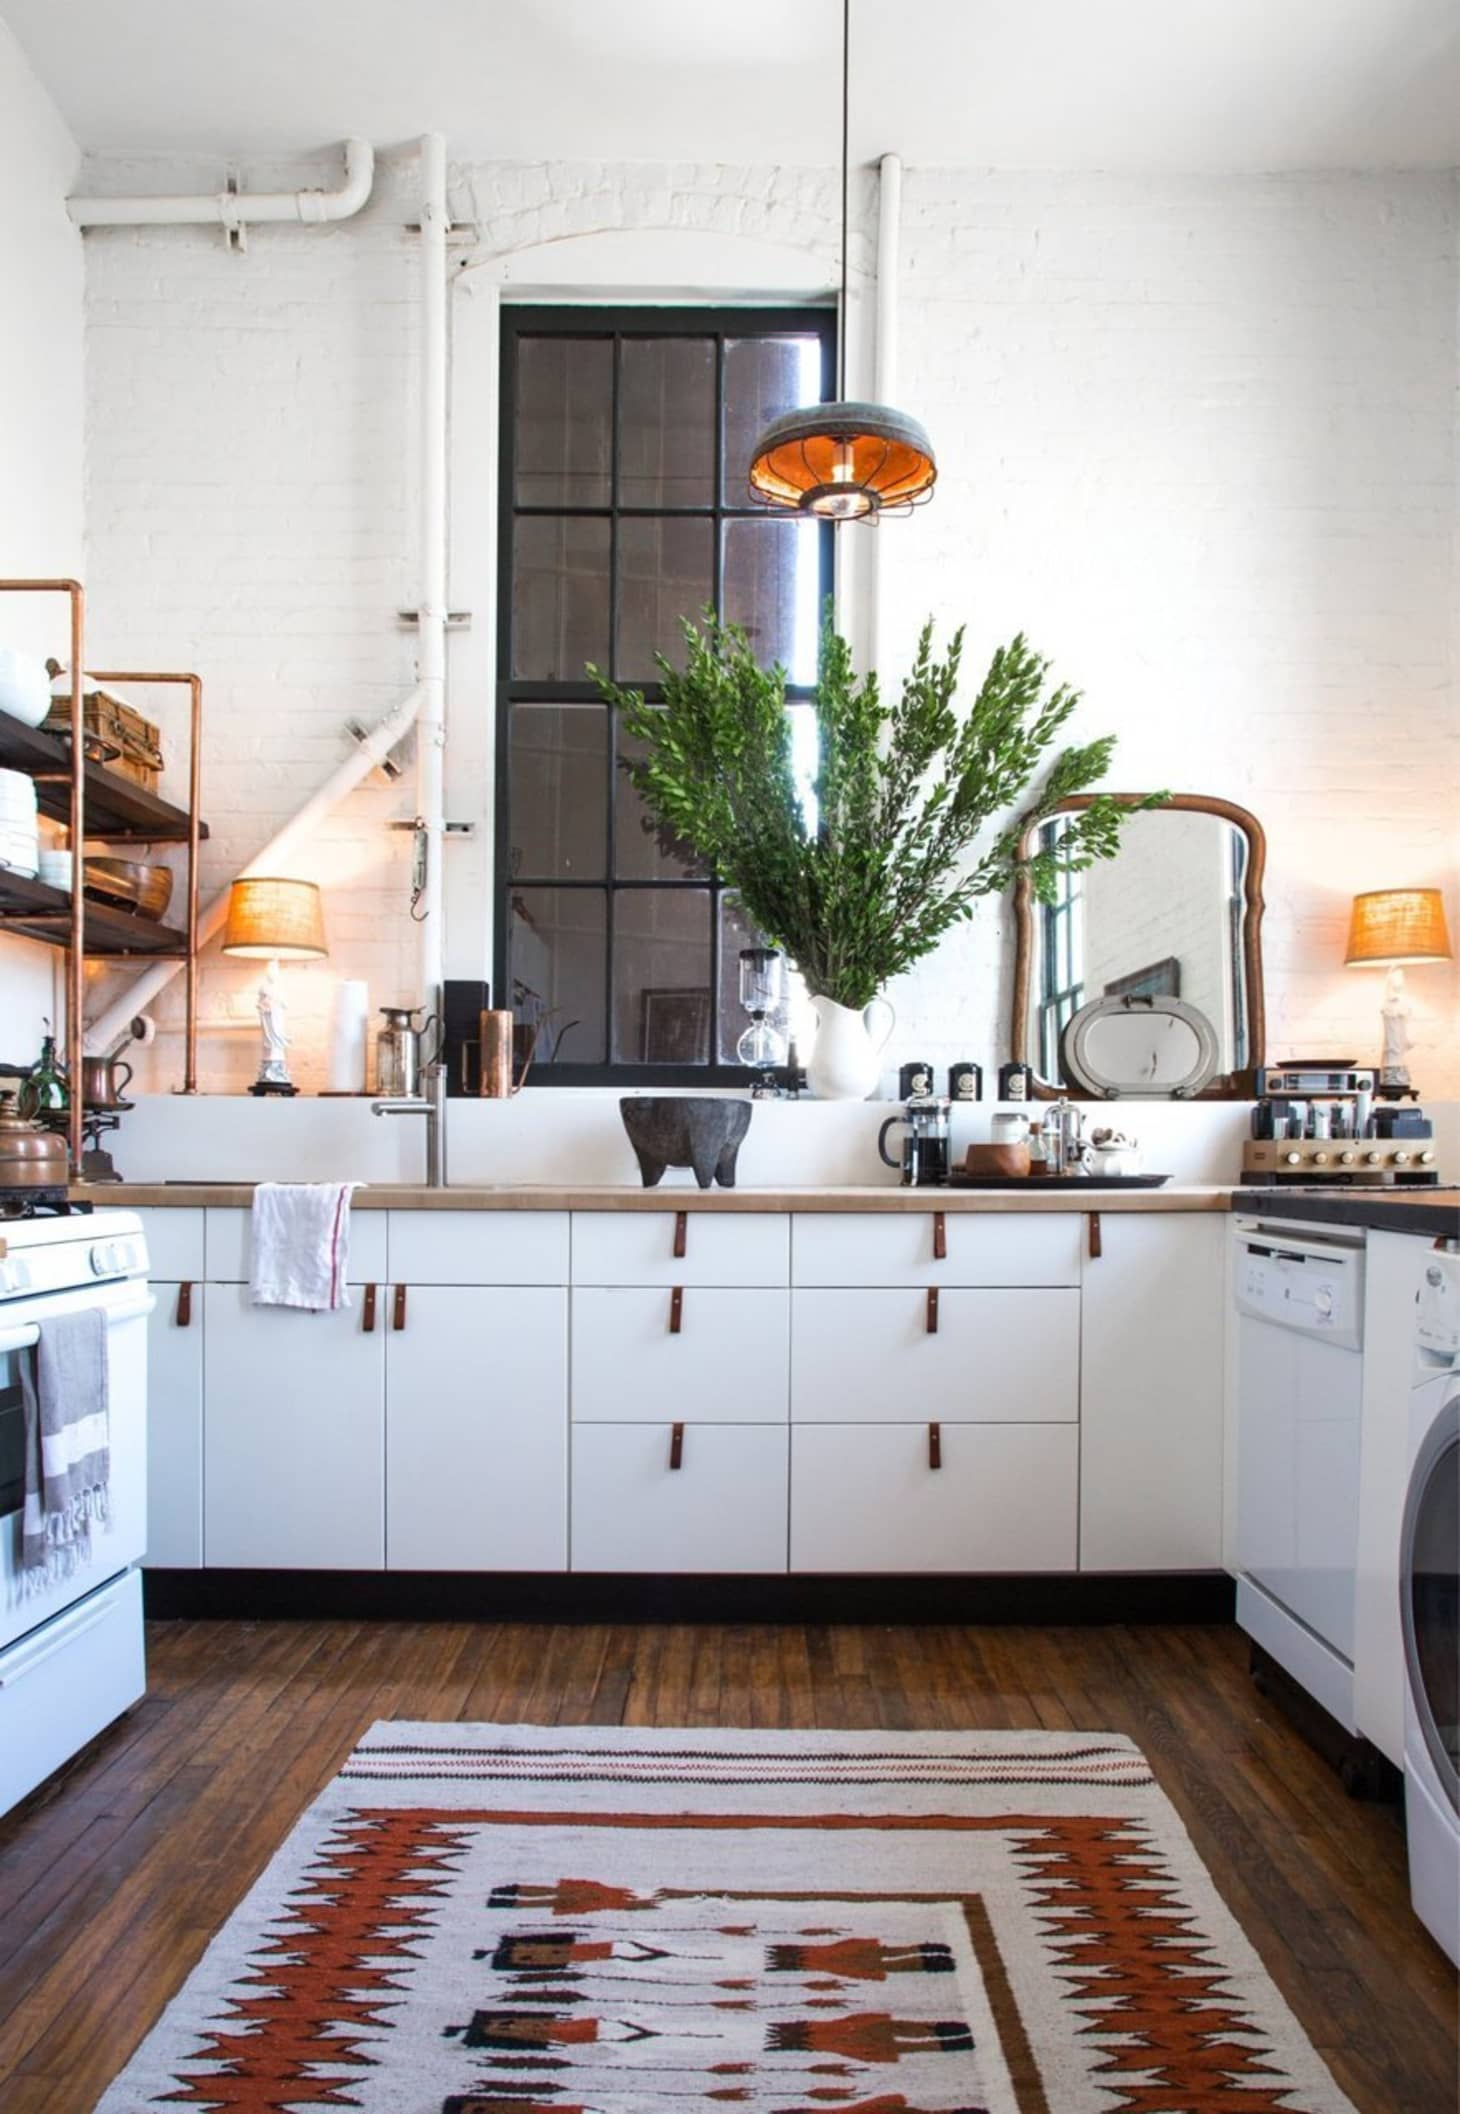 Rugs in the Kitchen: Yea or Nay? | Apartment Therapy